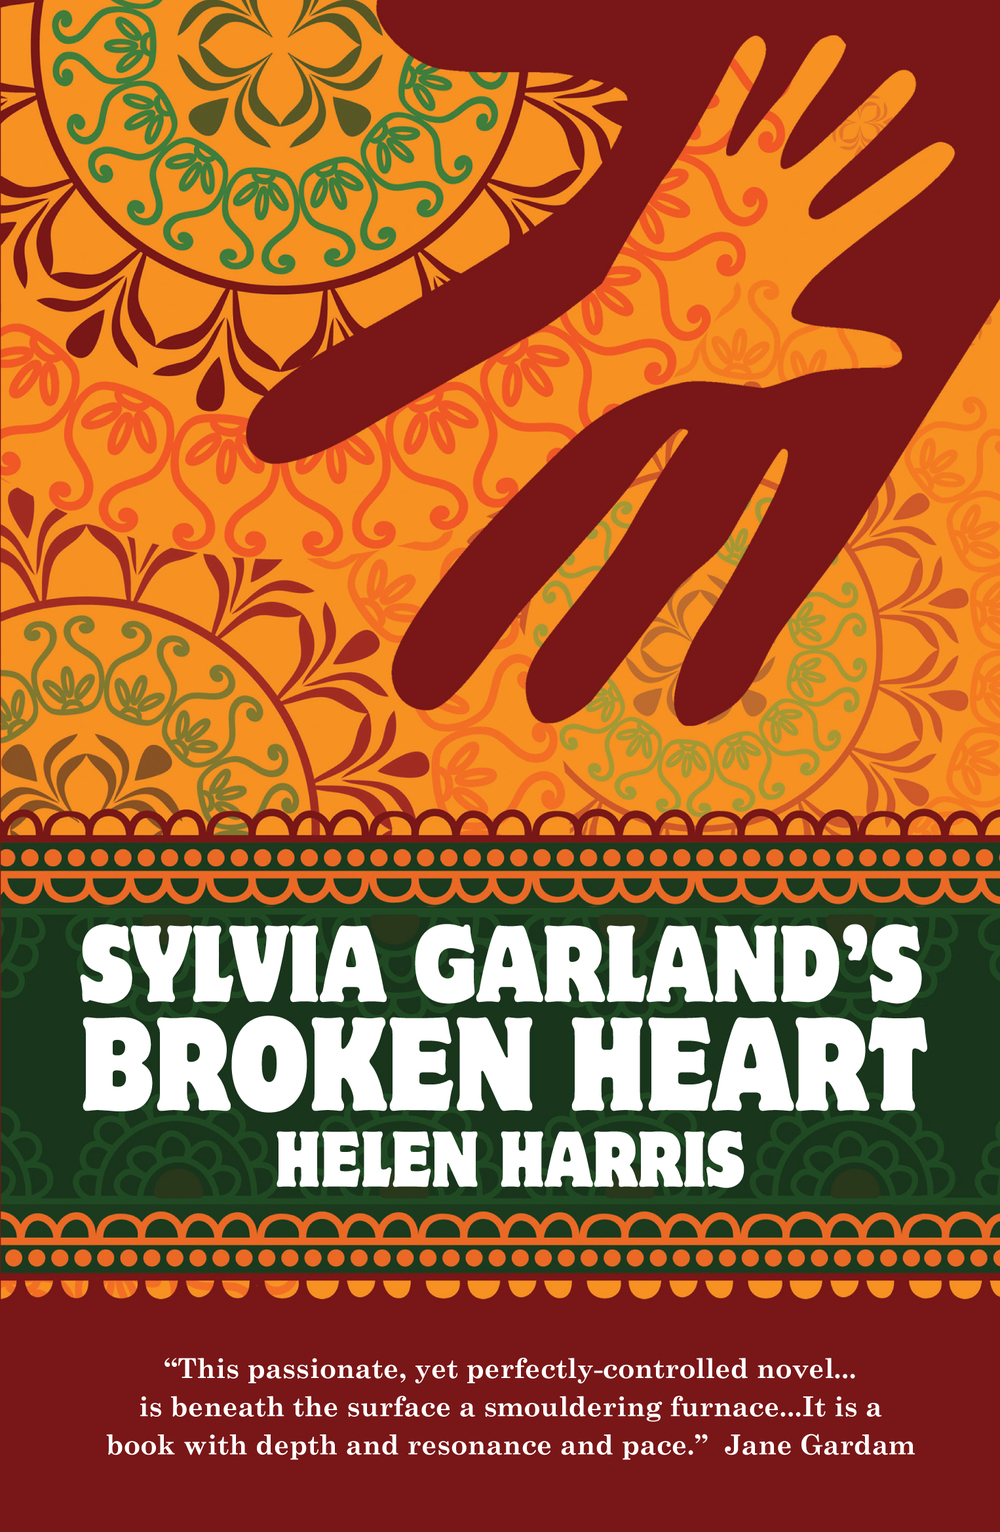 Sylvia garlands broken heart halban publishers format paperback and ebook published 13 nov 2014 length 352 pages isbn 9781905559701 isbn 9781905559718 ebook fandeluxe Document